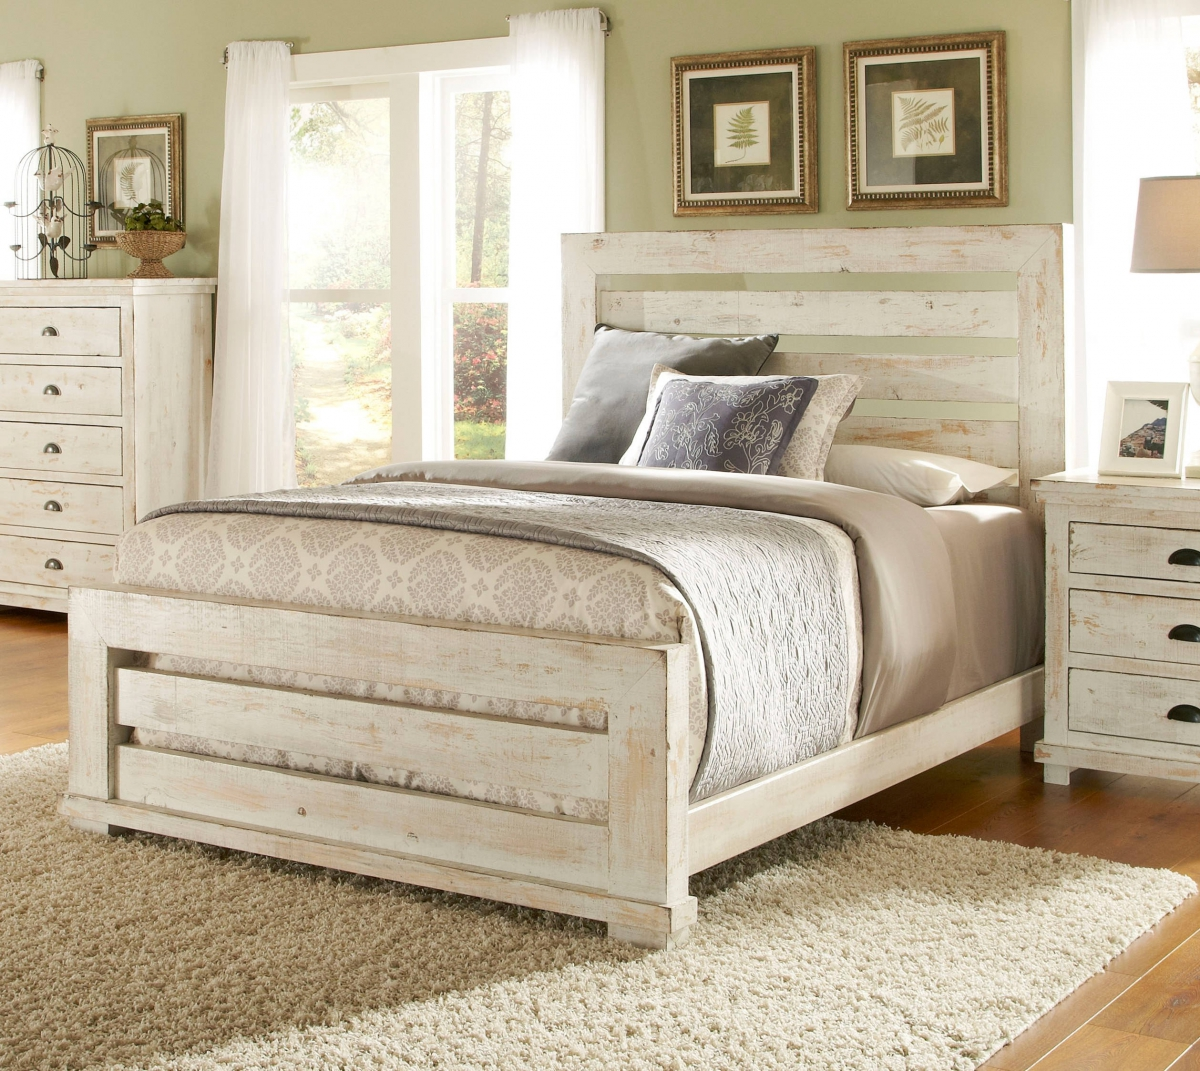 Progressive Furniture Willow Distressed White Queen Slat Bed | The ...